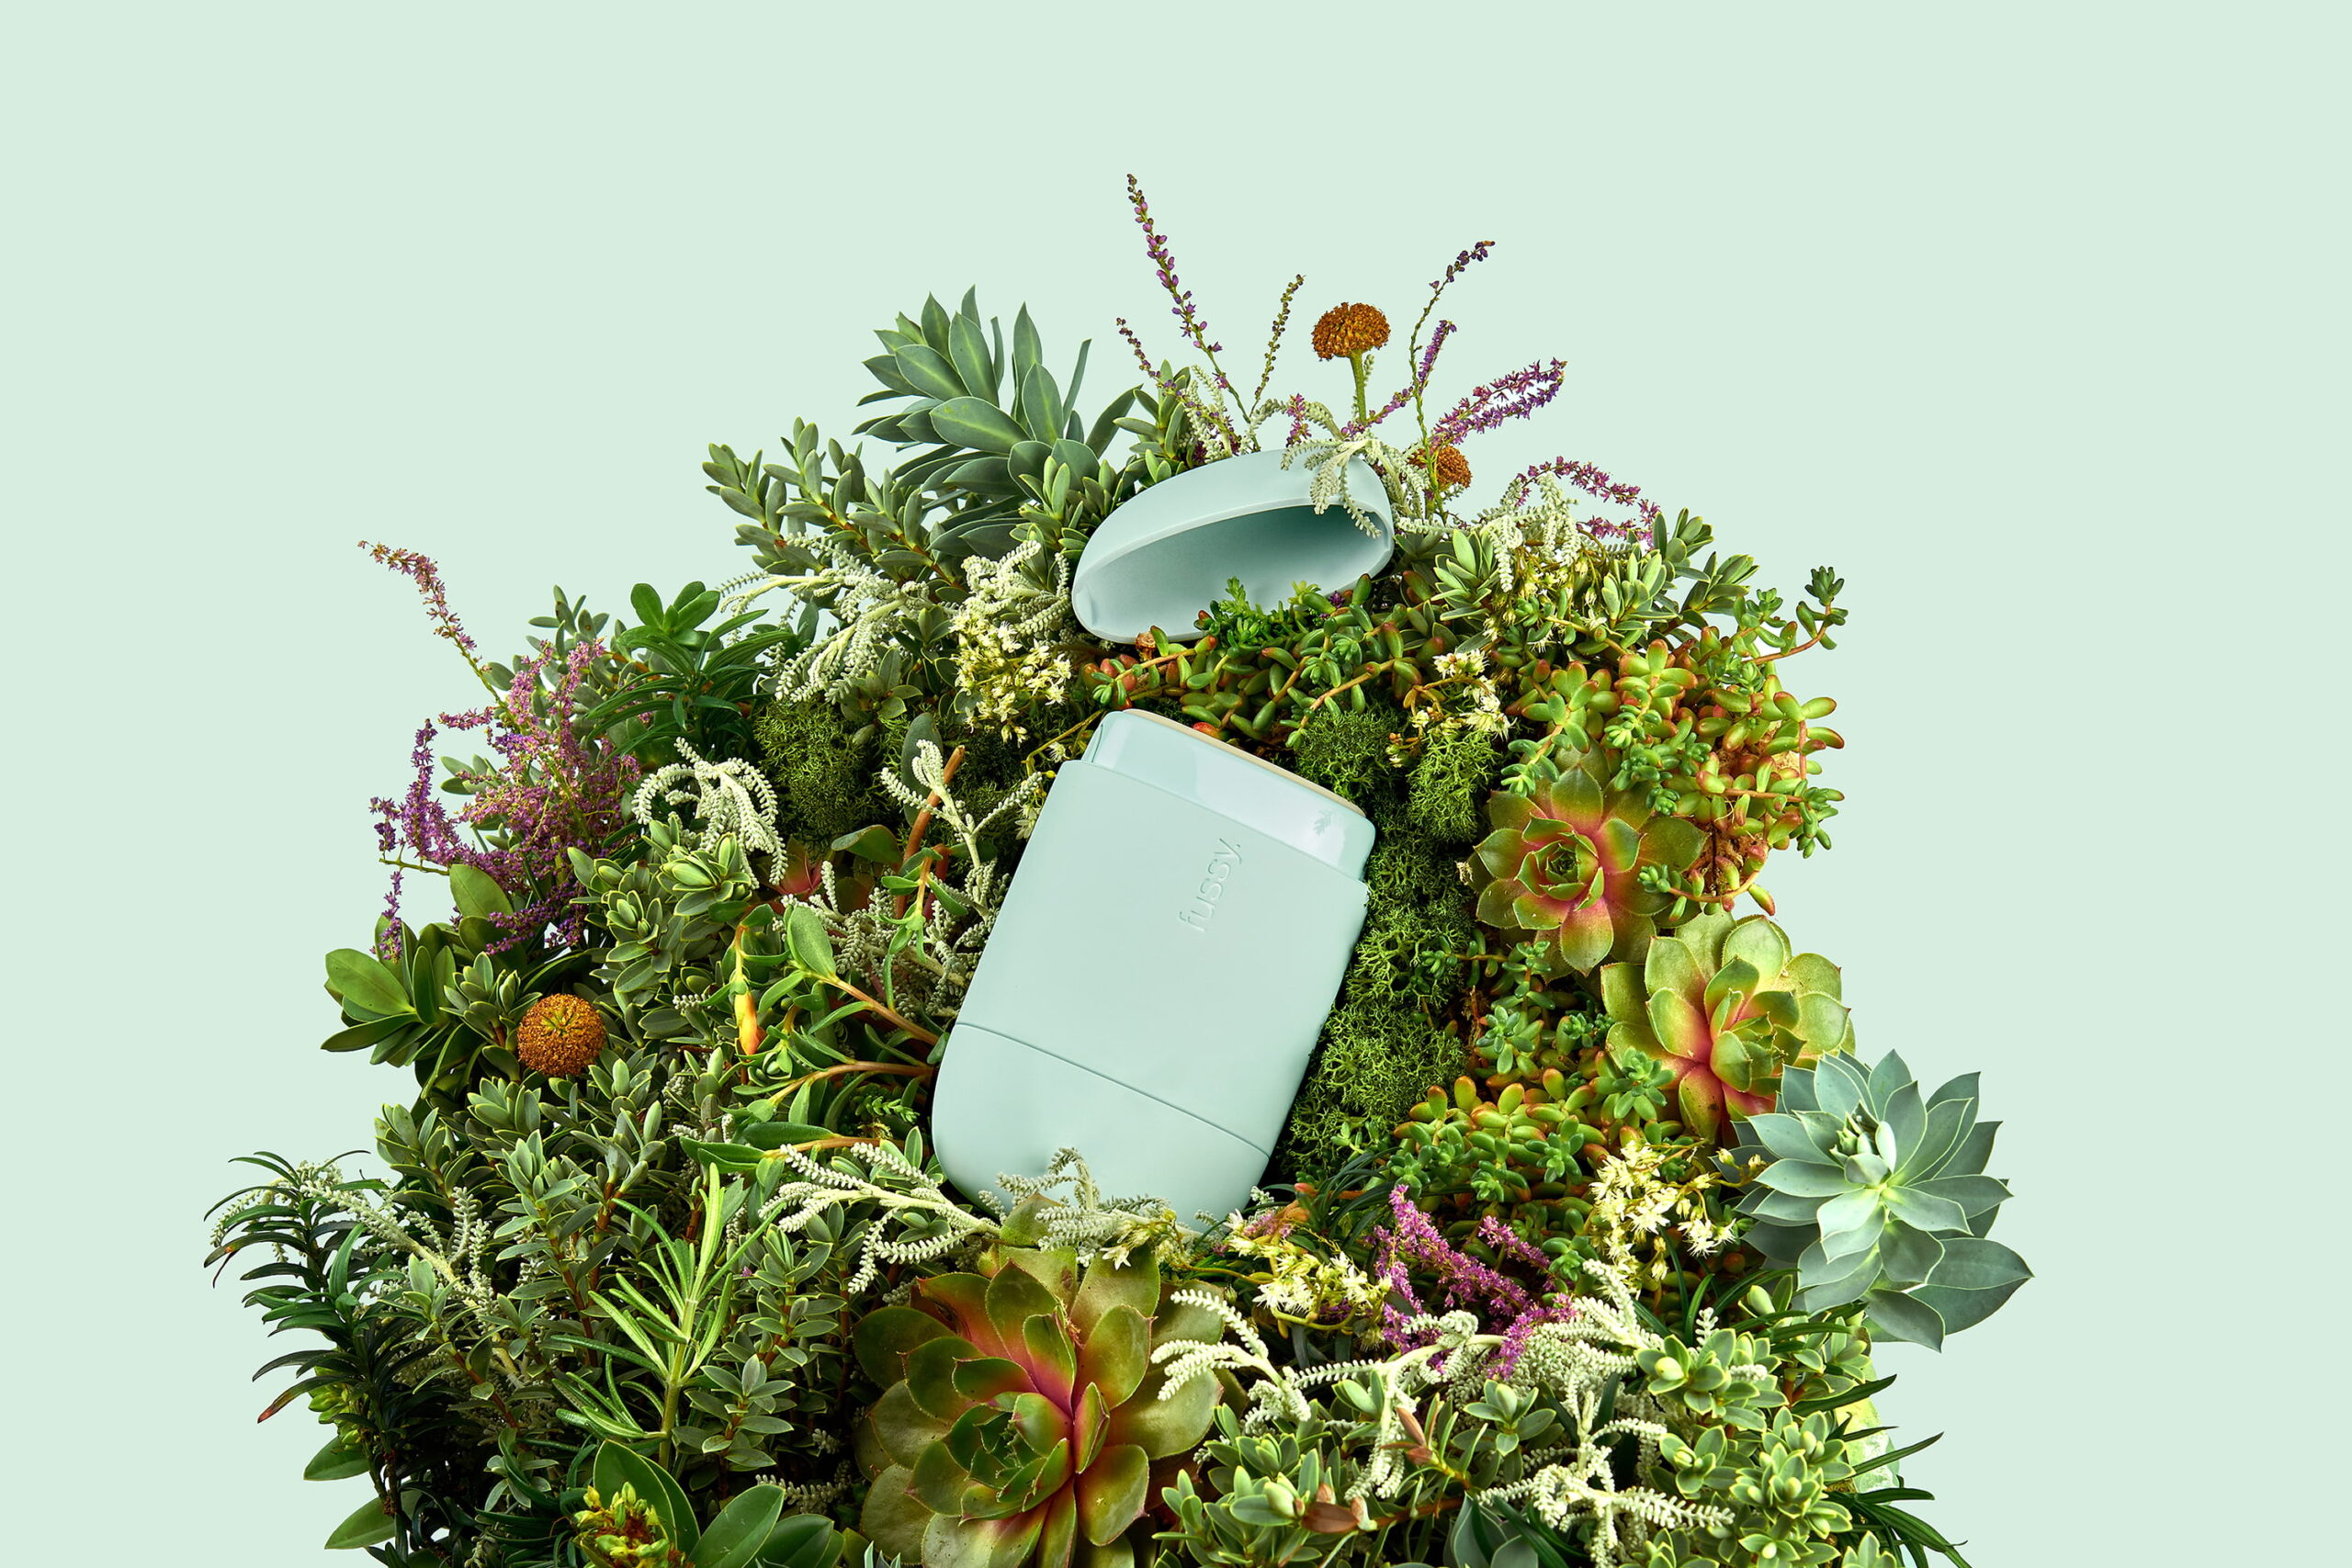 Blond-Design-Agency-Cosmetics-Packaging-Sustainable-Eco-Deodorant-Flowers-Blue-Landscape